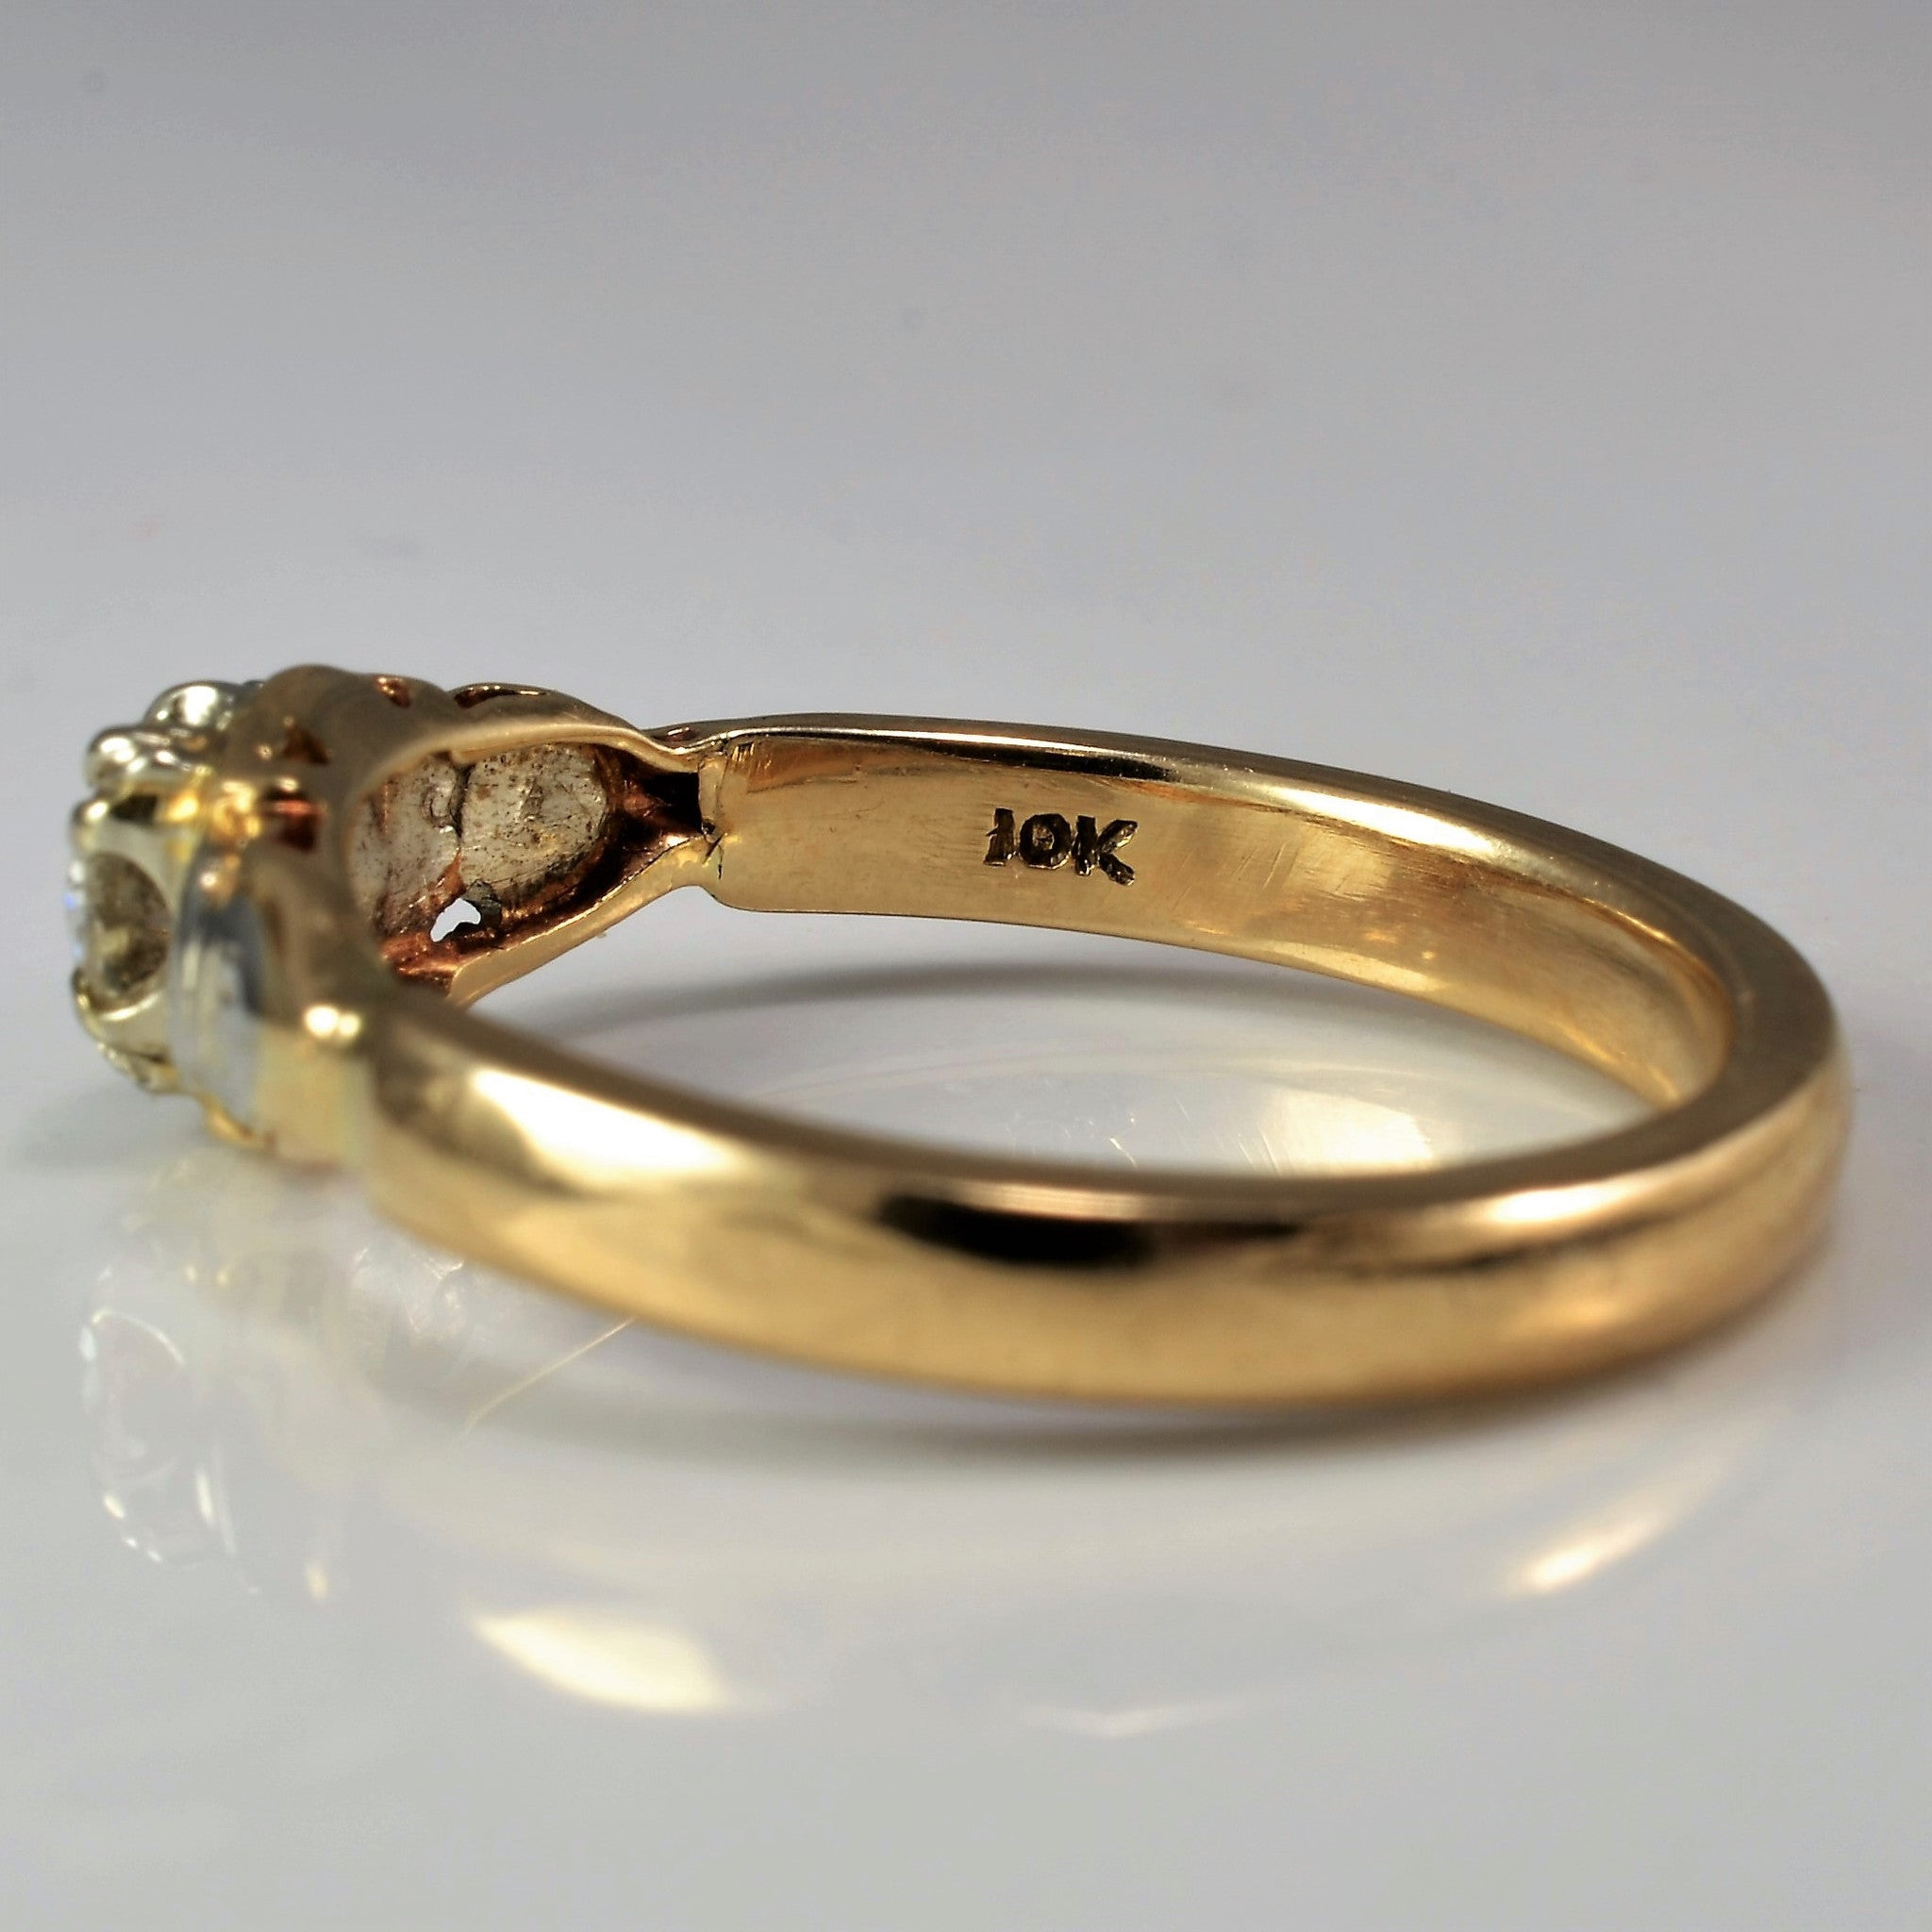 Solitaire Engagement Ring Circa 1930's | 0.30 ct, SZ 7.25 |